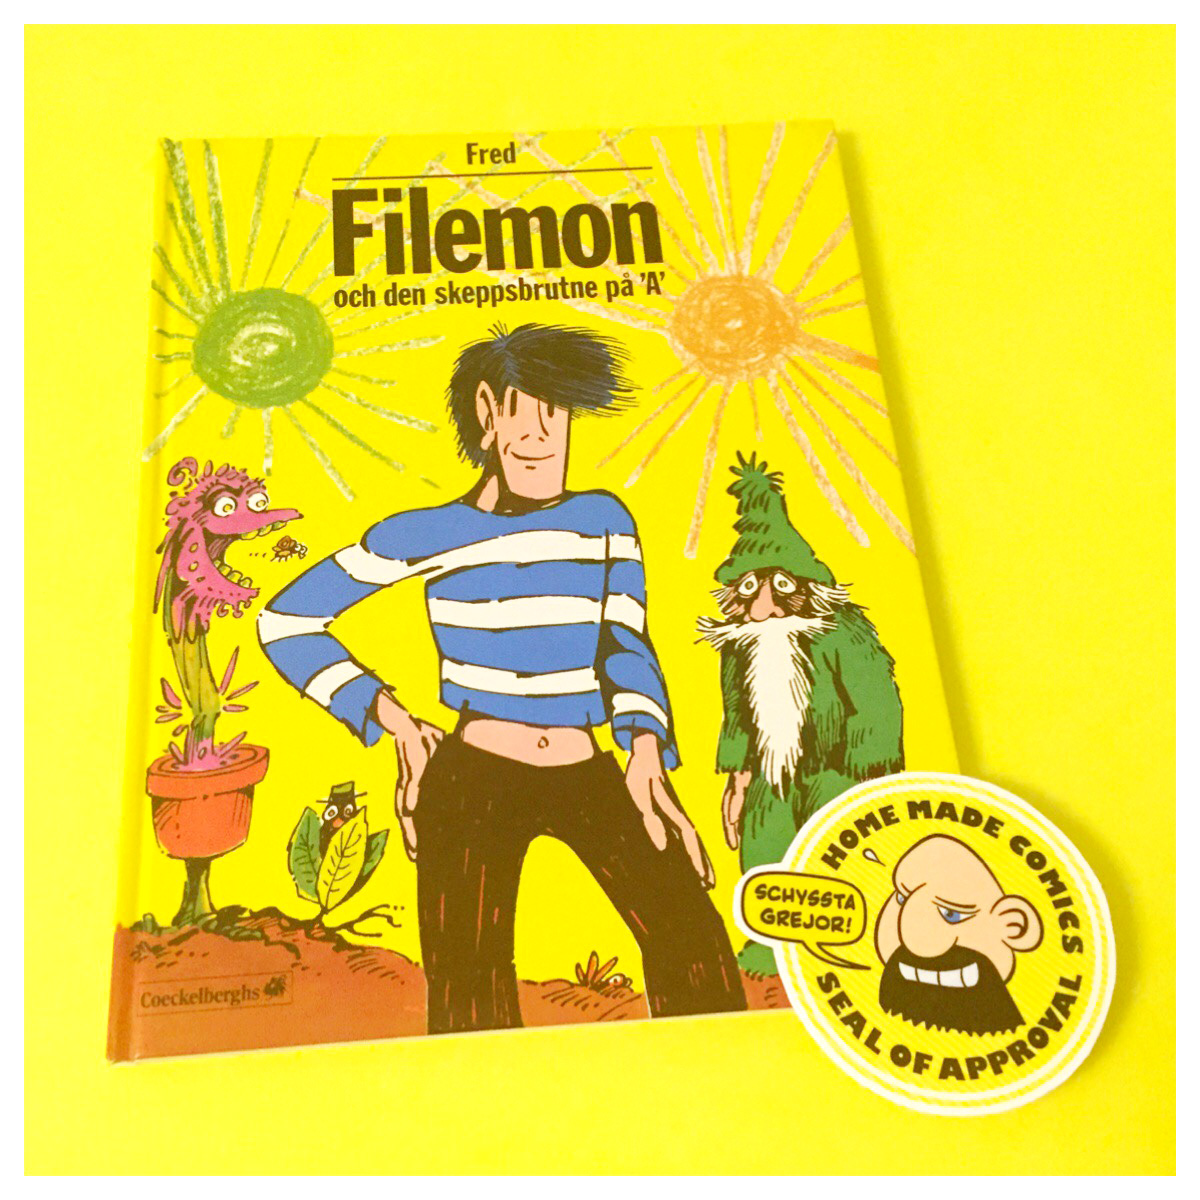 Home Made Comics Seal of Approval #166. Filemon och den skeppsbrutne på 'A' av Fred utgiven av Coeckelberghs 1979.